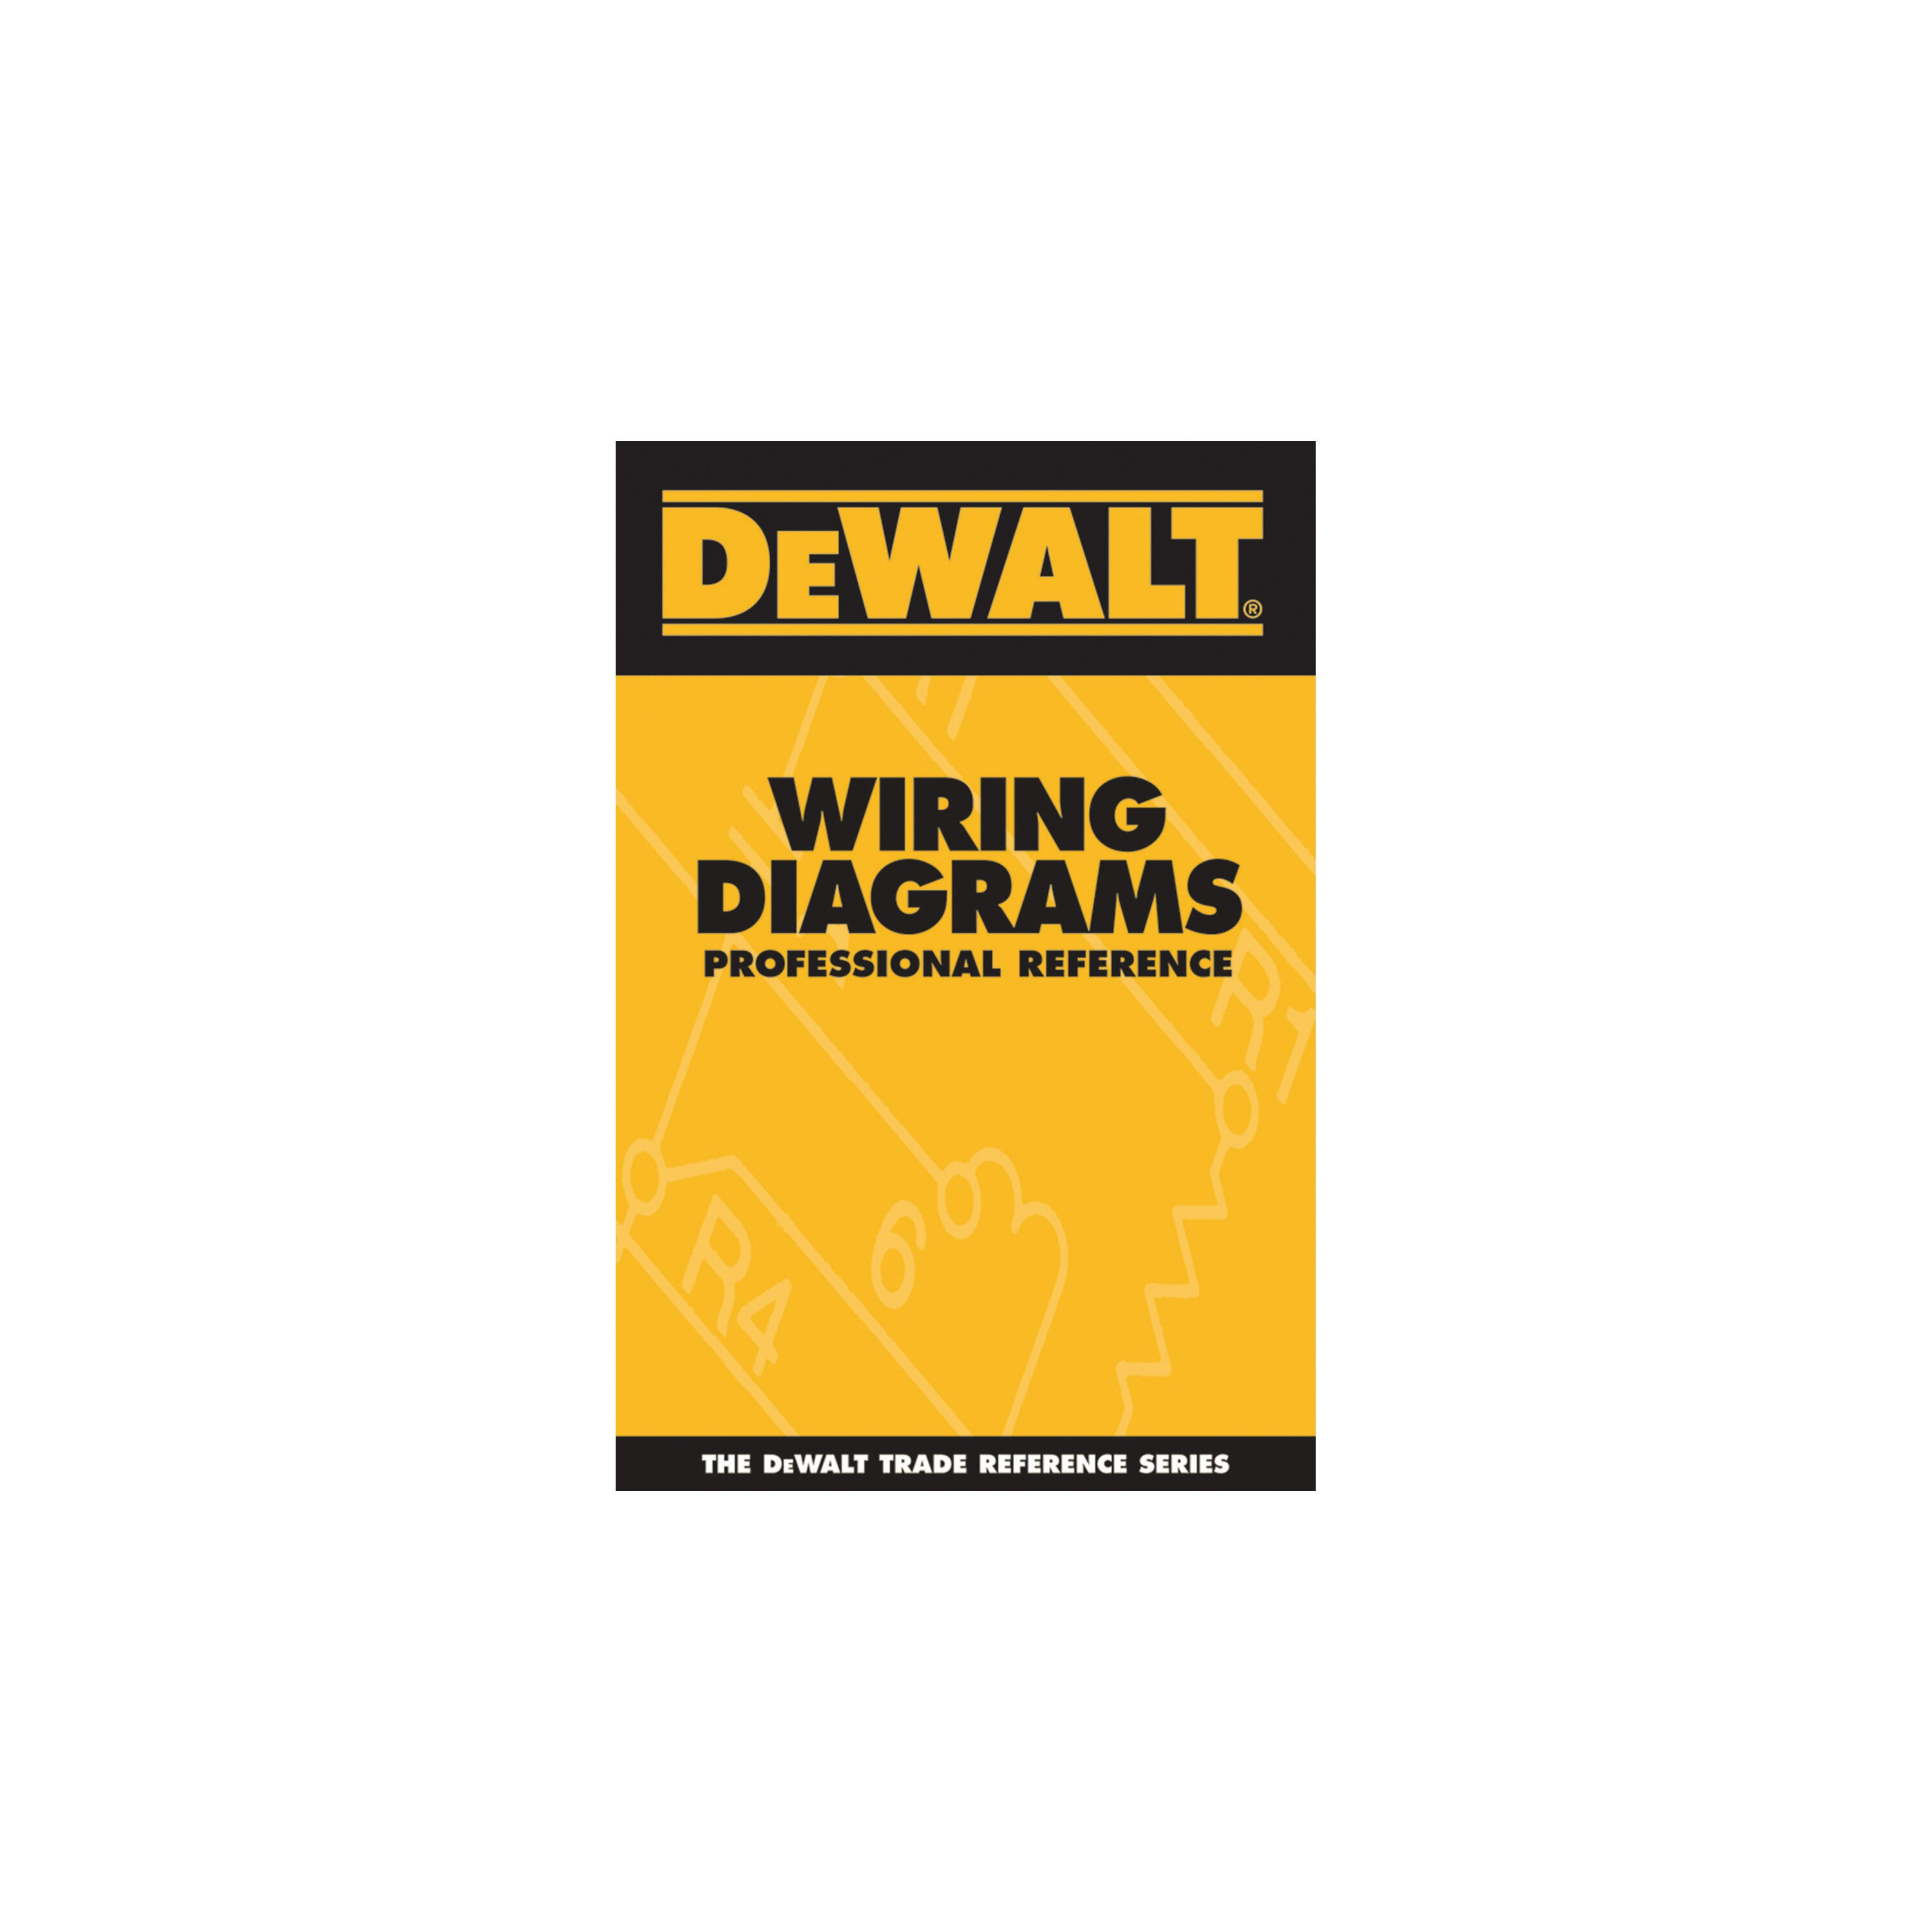 Wiring Diagrams Professional Reference